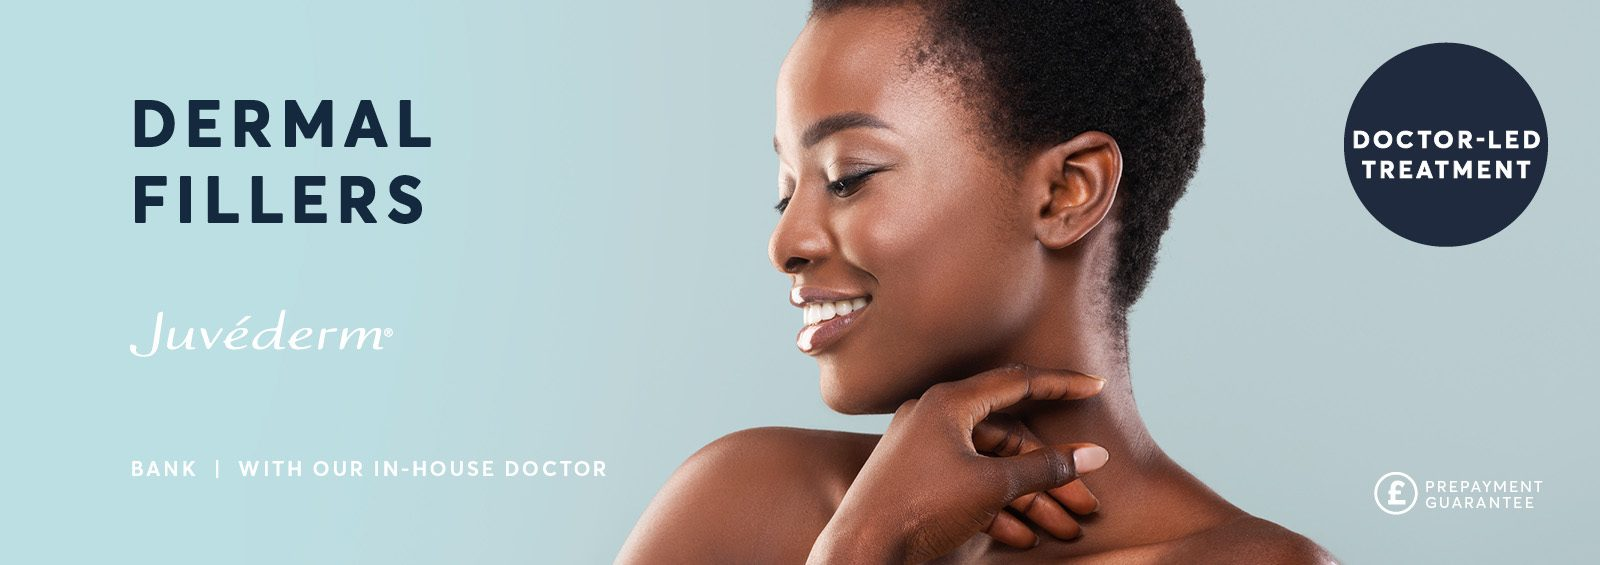 derma fillers injections London banner